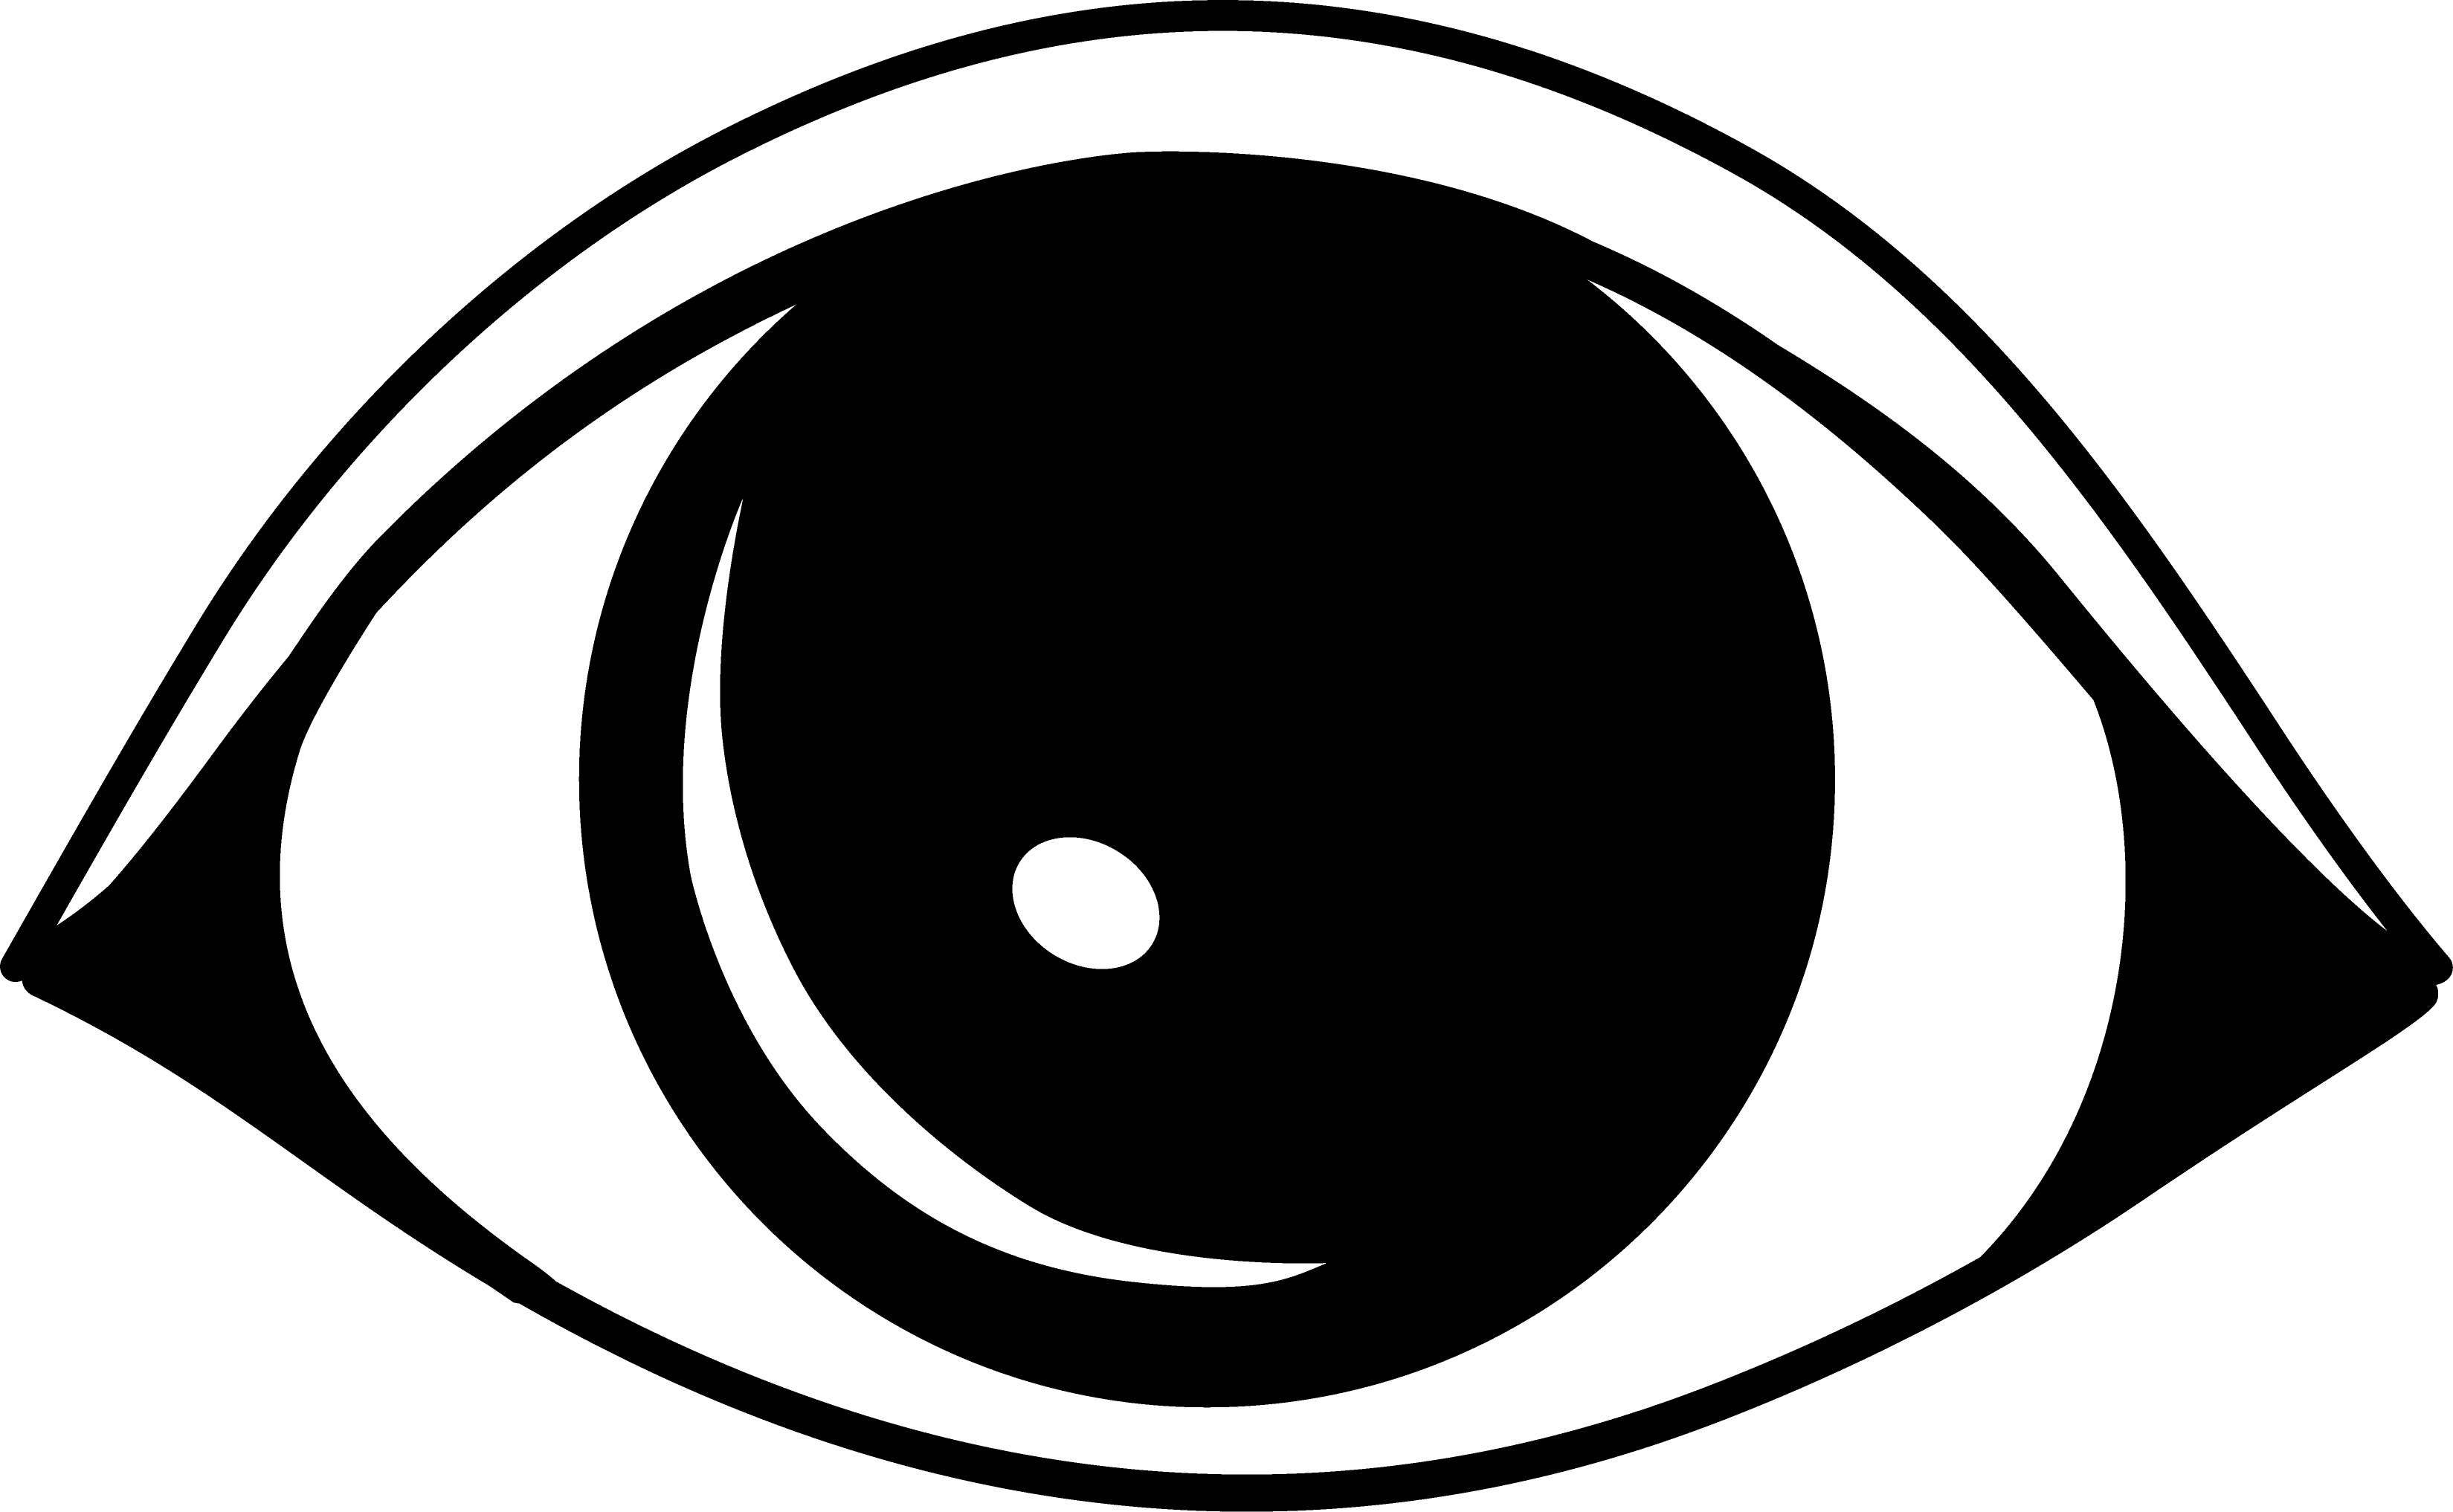 Eye clipart black and white free images